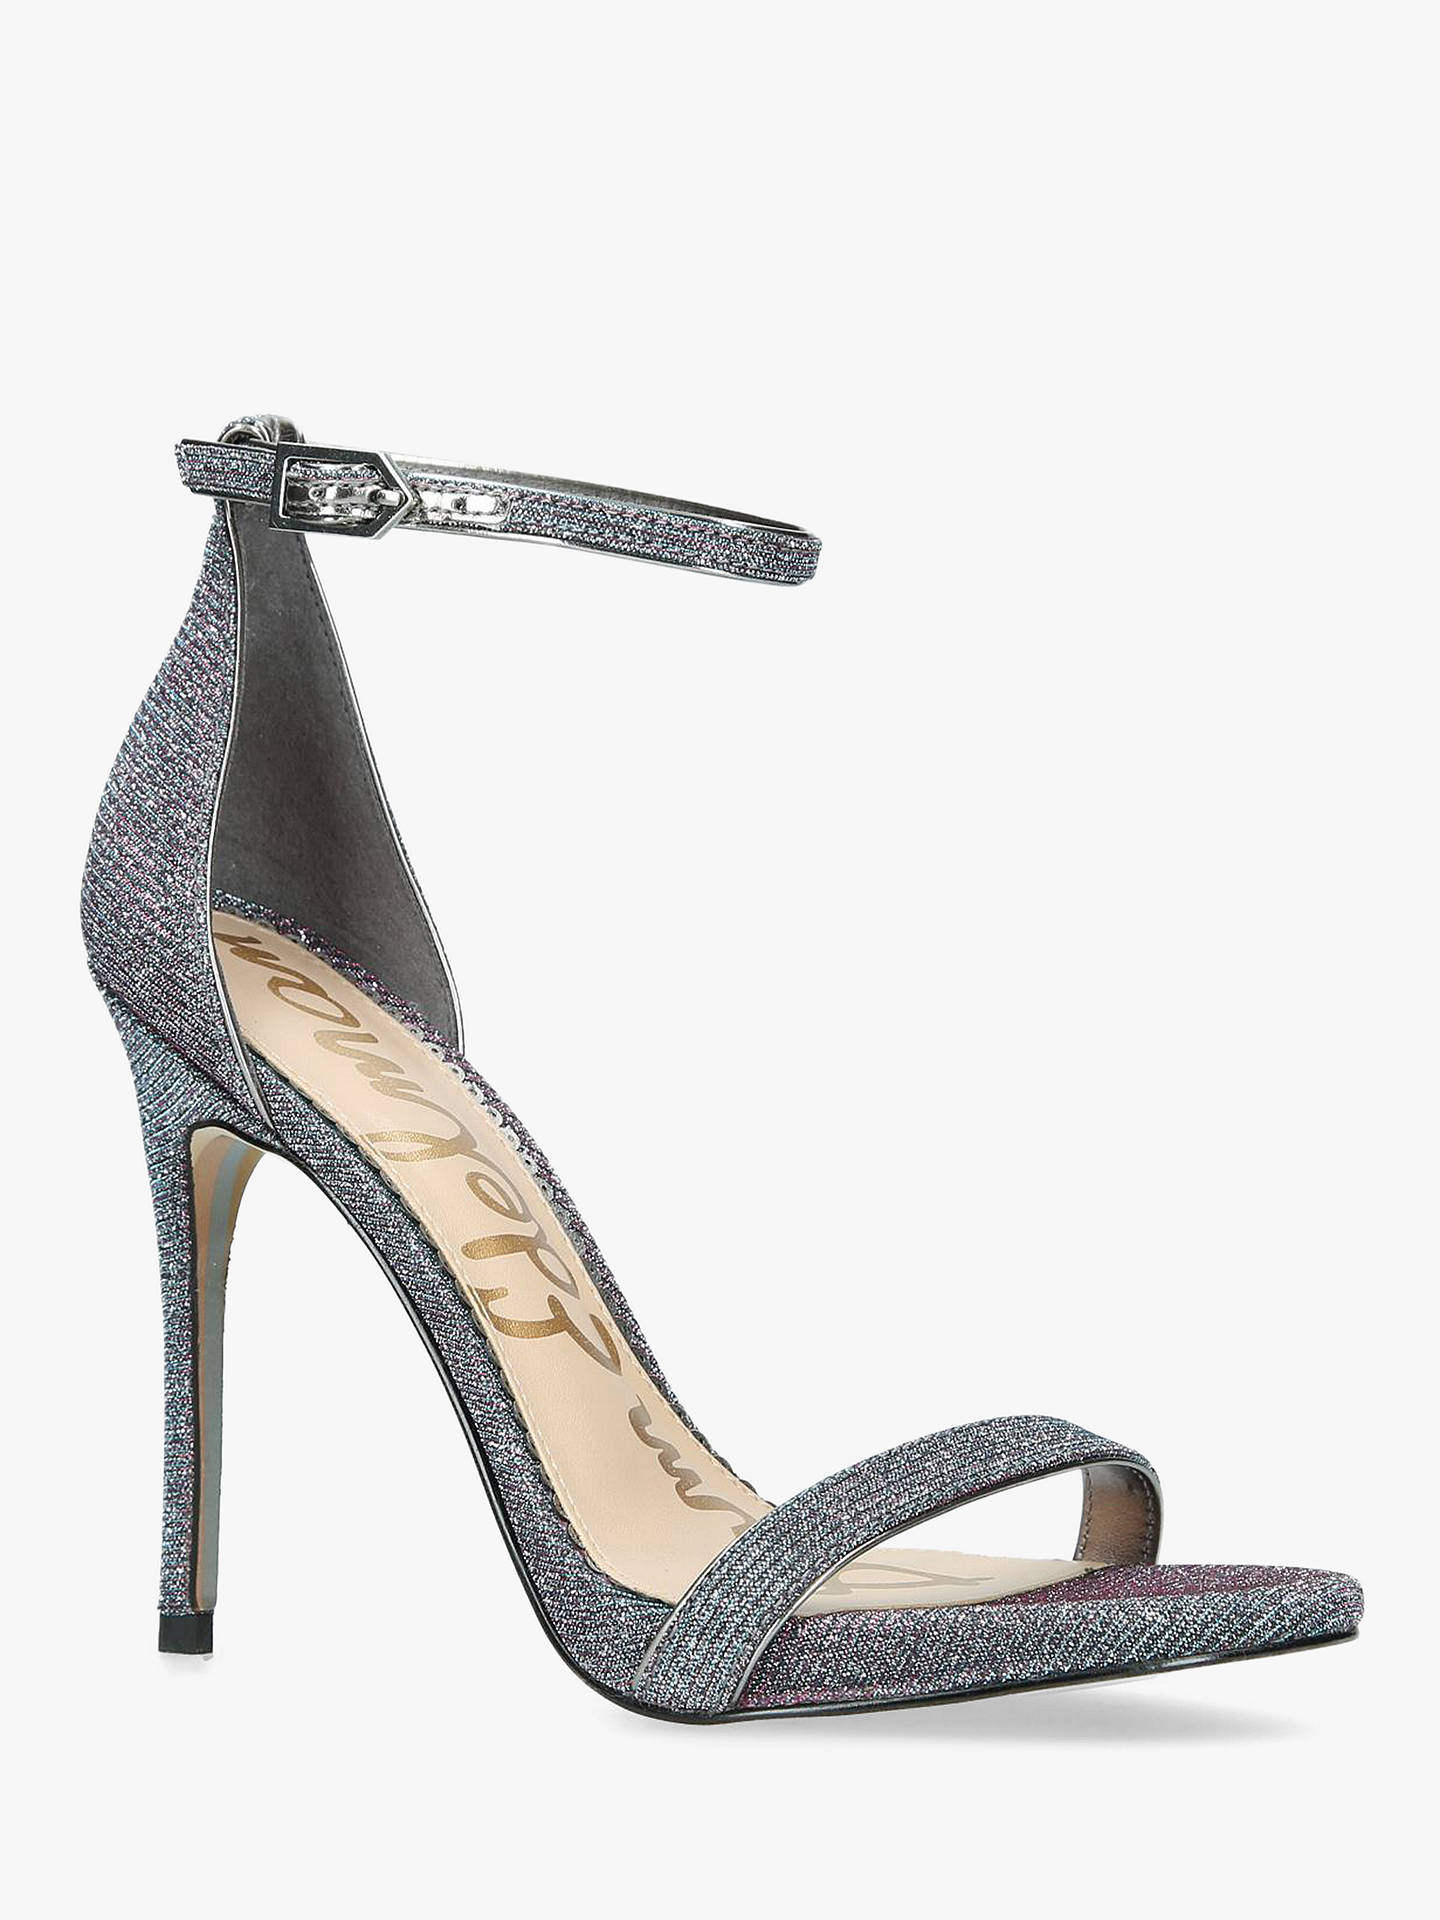 Buy Sam Edelman Ariella Ankle Strap Heeled Sandals, Pink/Grey, 7 Online at johnlewis.com